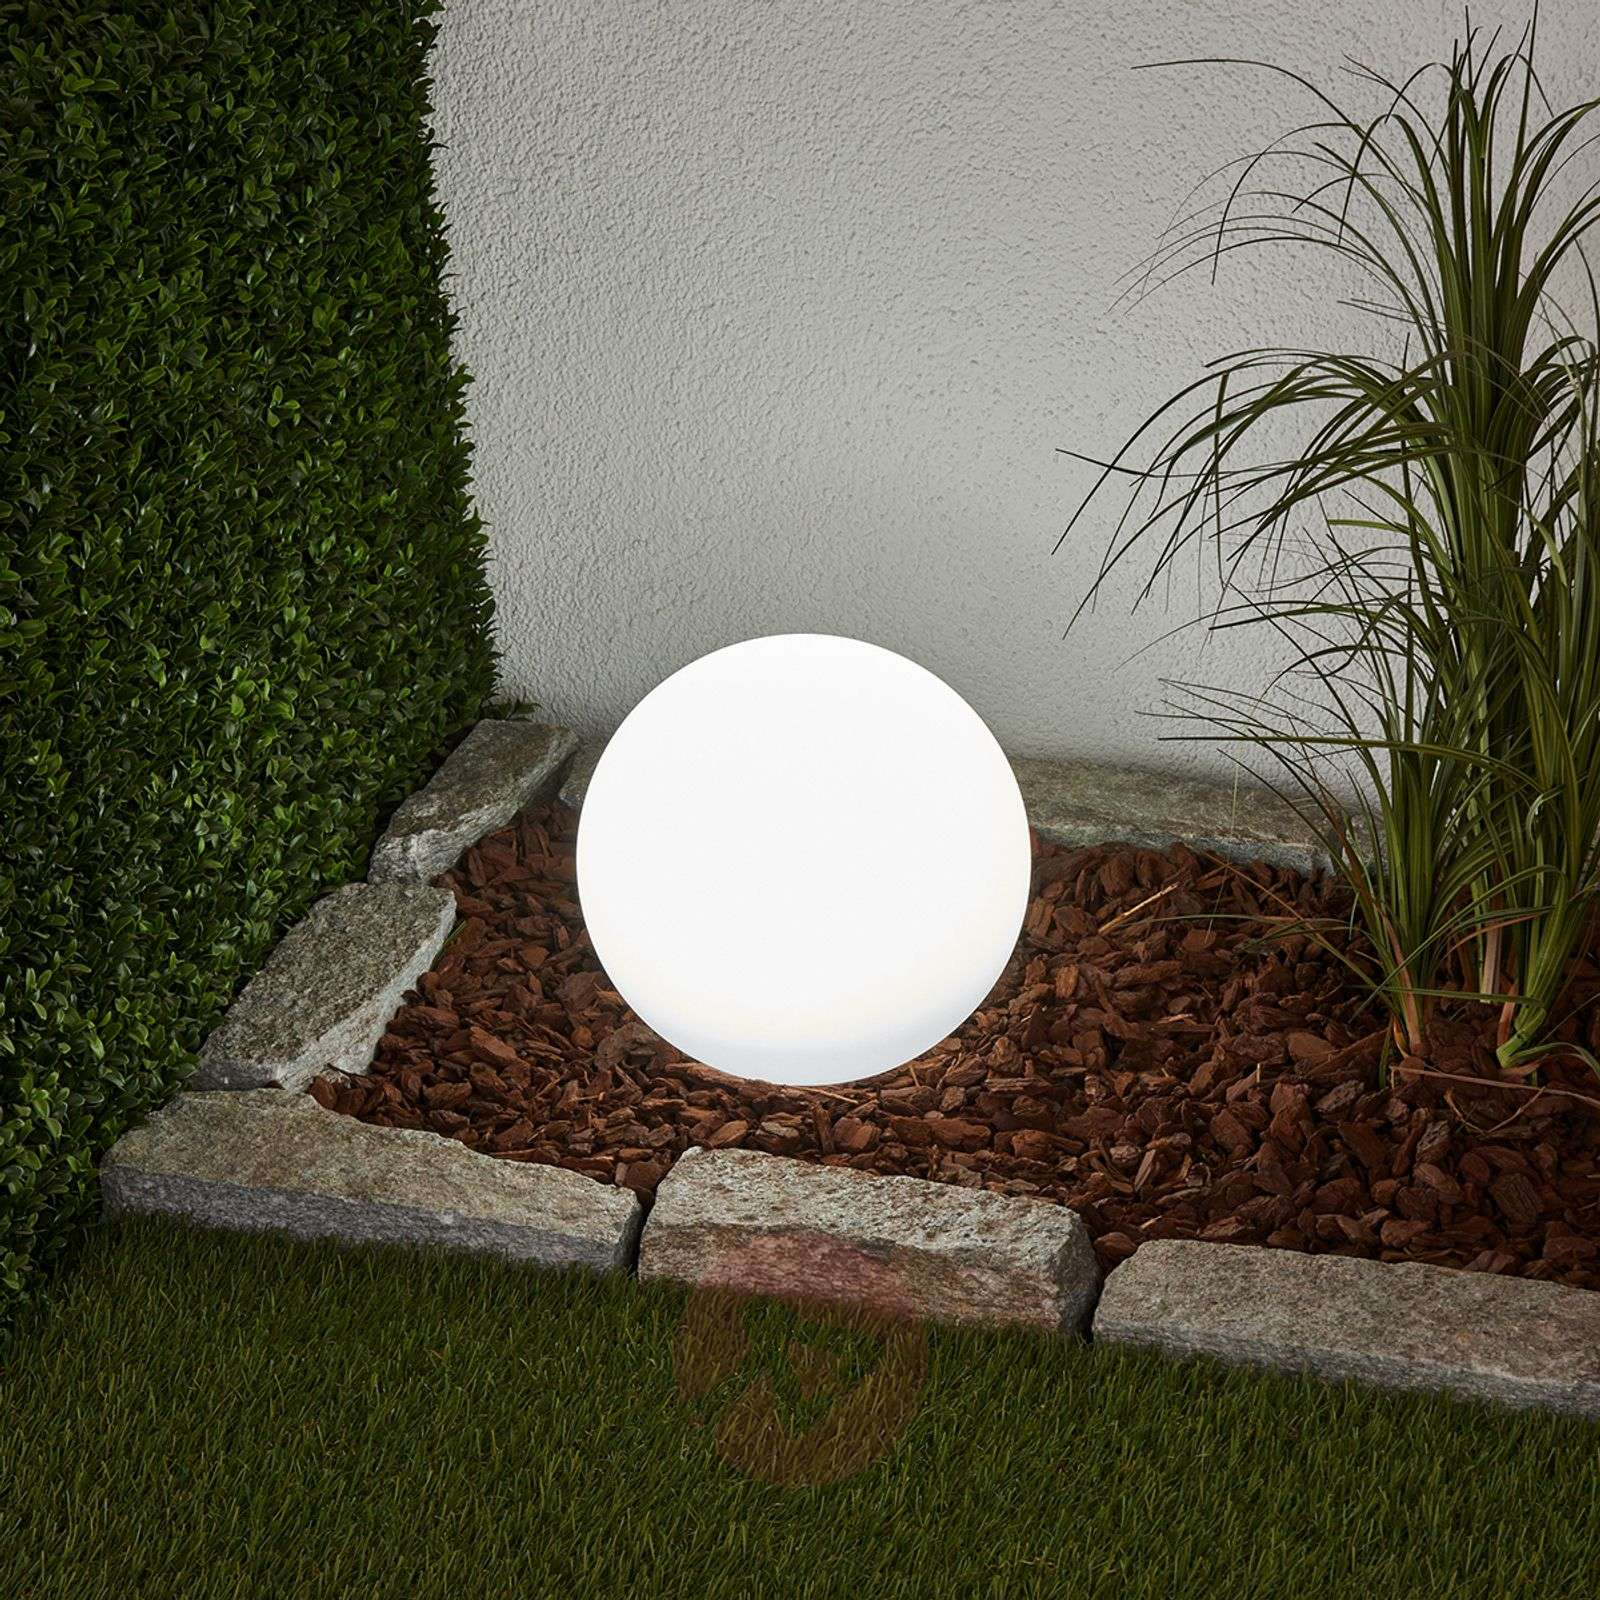 Solar Stake Light - Northern Lights Sphere | Gardeners.com |Solar Sphere